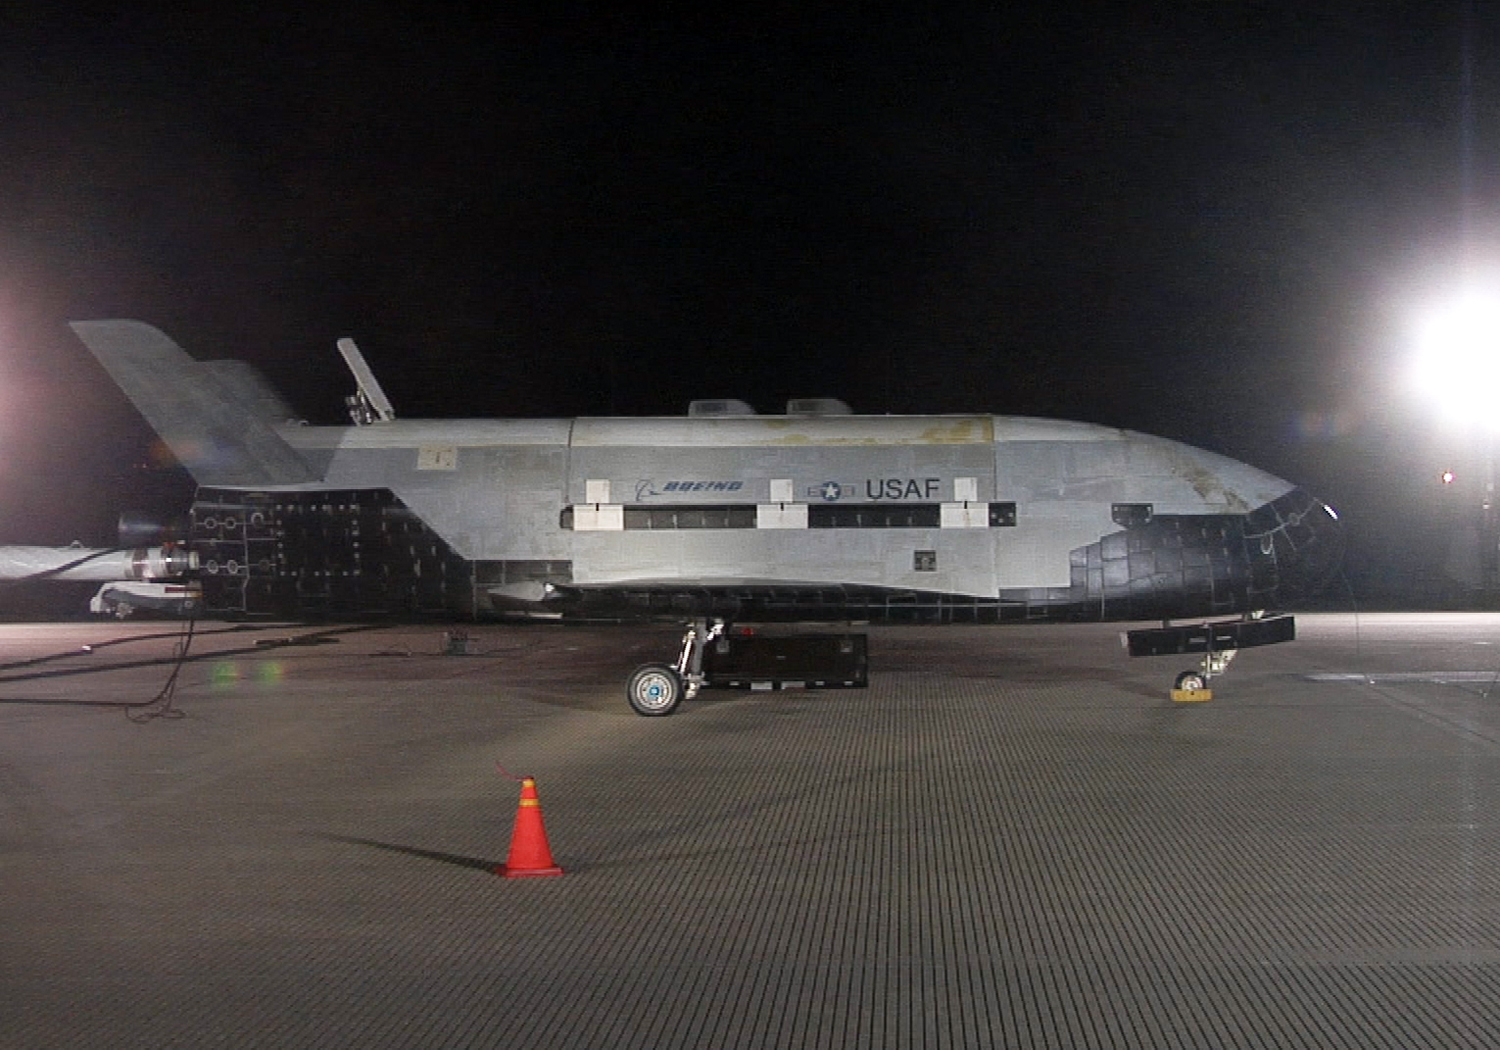 Mystery Surrounds Air Force's Secretive X-37B Space Plane Landing Plan